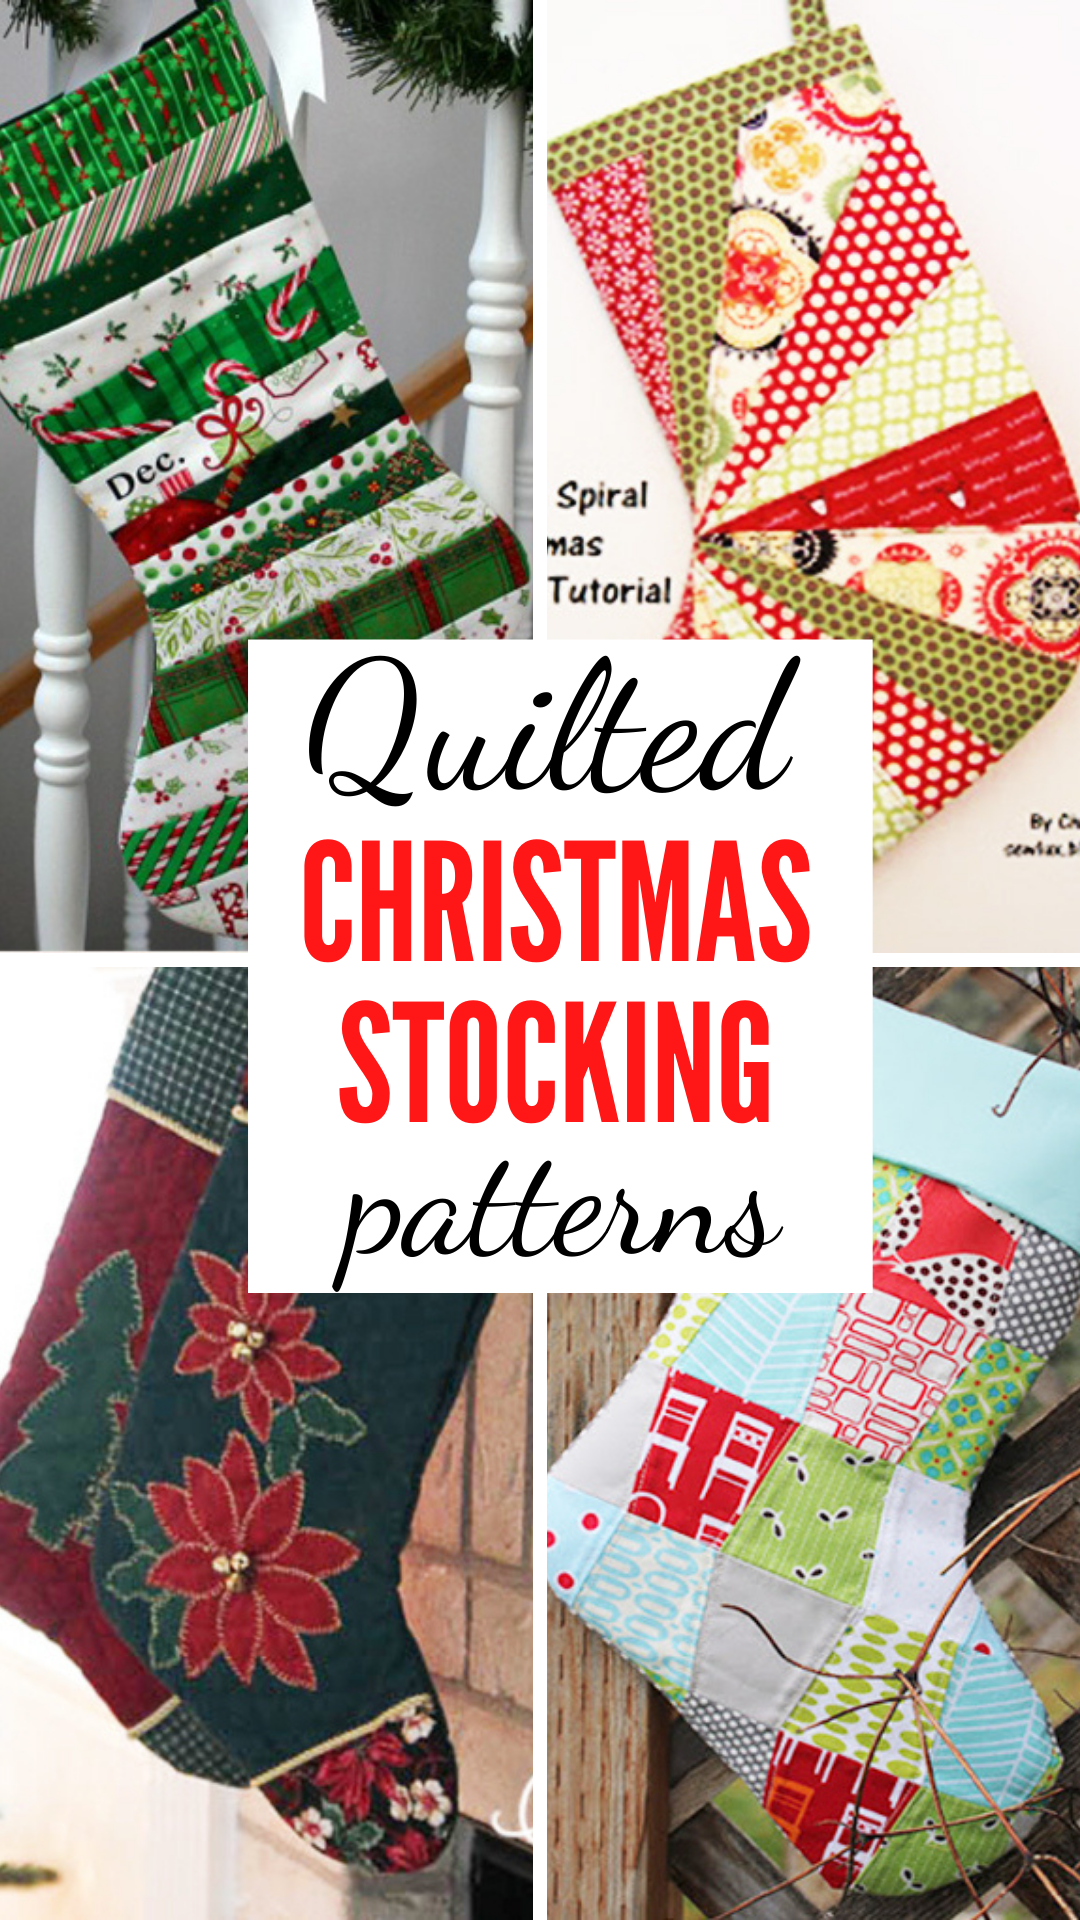 Free Quilted Christmas Stocking Patterns To Spruce Up Your Holiday Mantel In 2020 Christmas Stocking Pattern Quilted Christmas Stockings Stocking Pattern